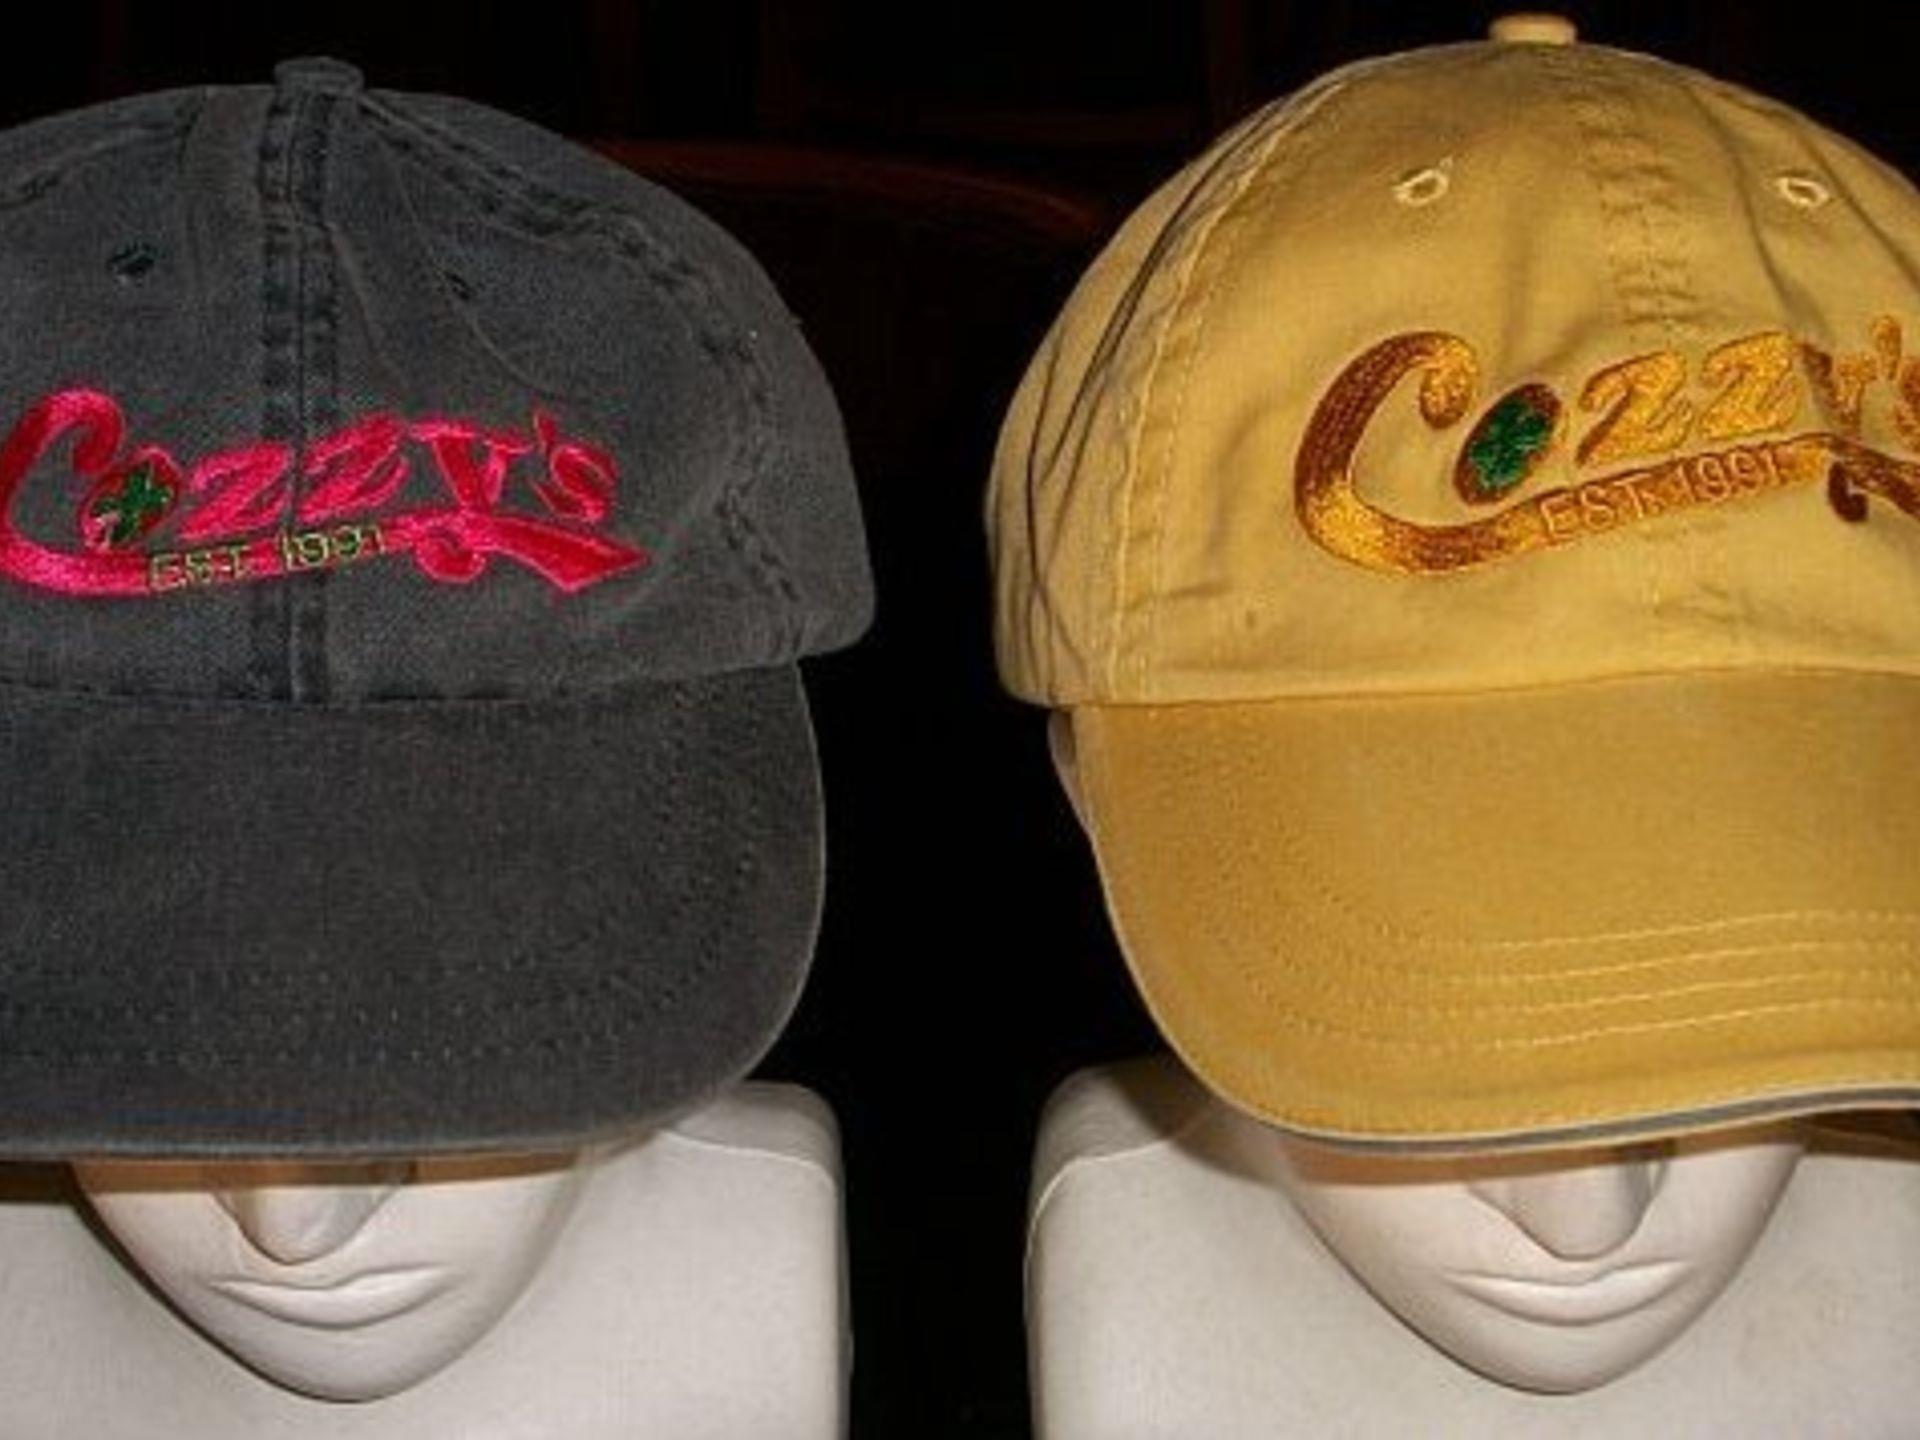 Cozzy's branded baseball caps